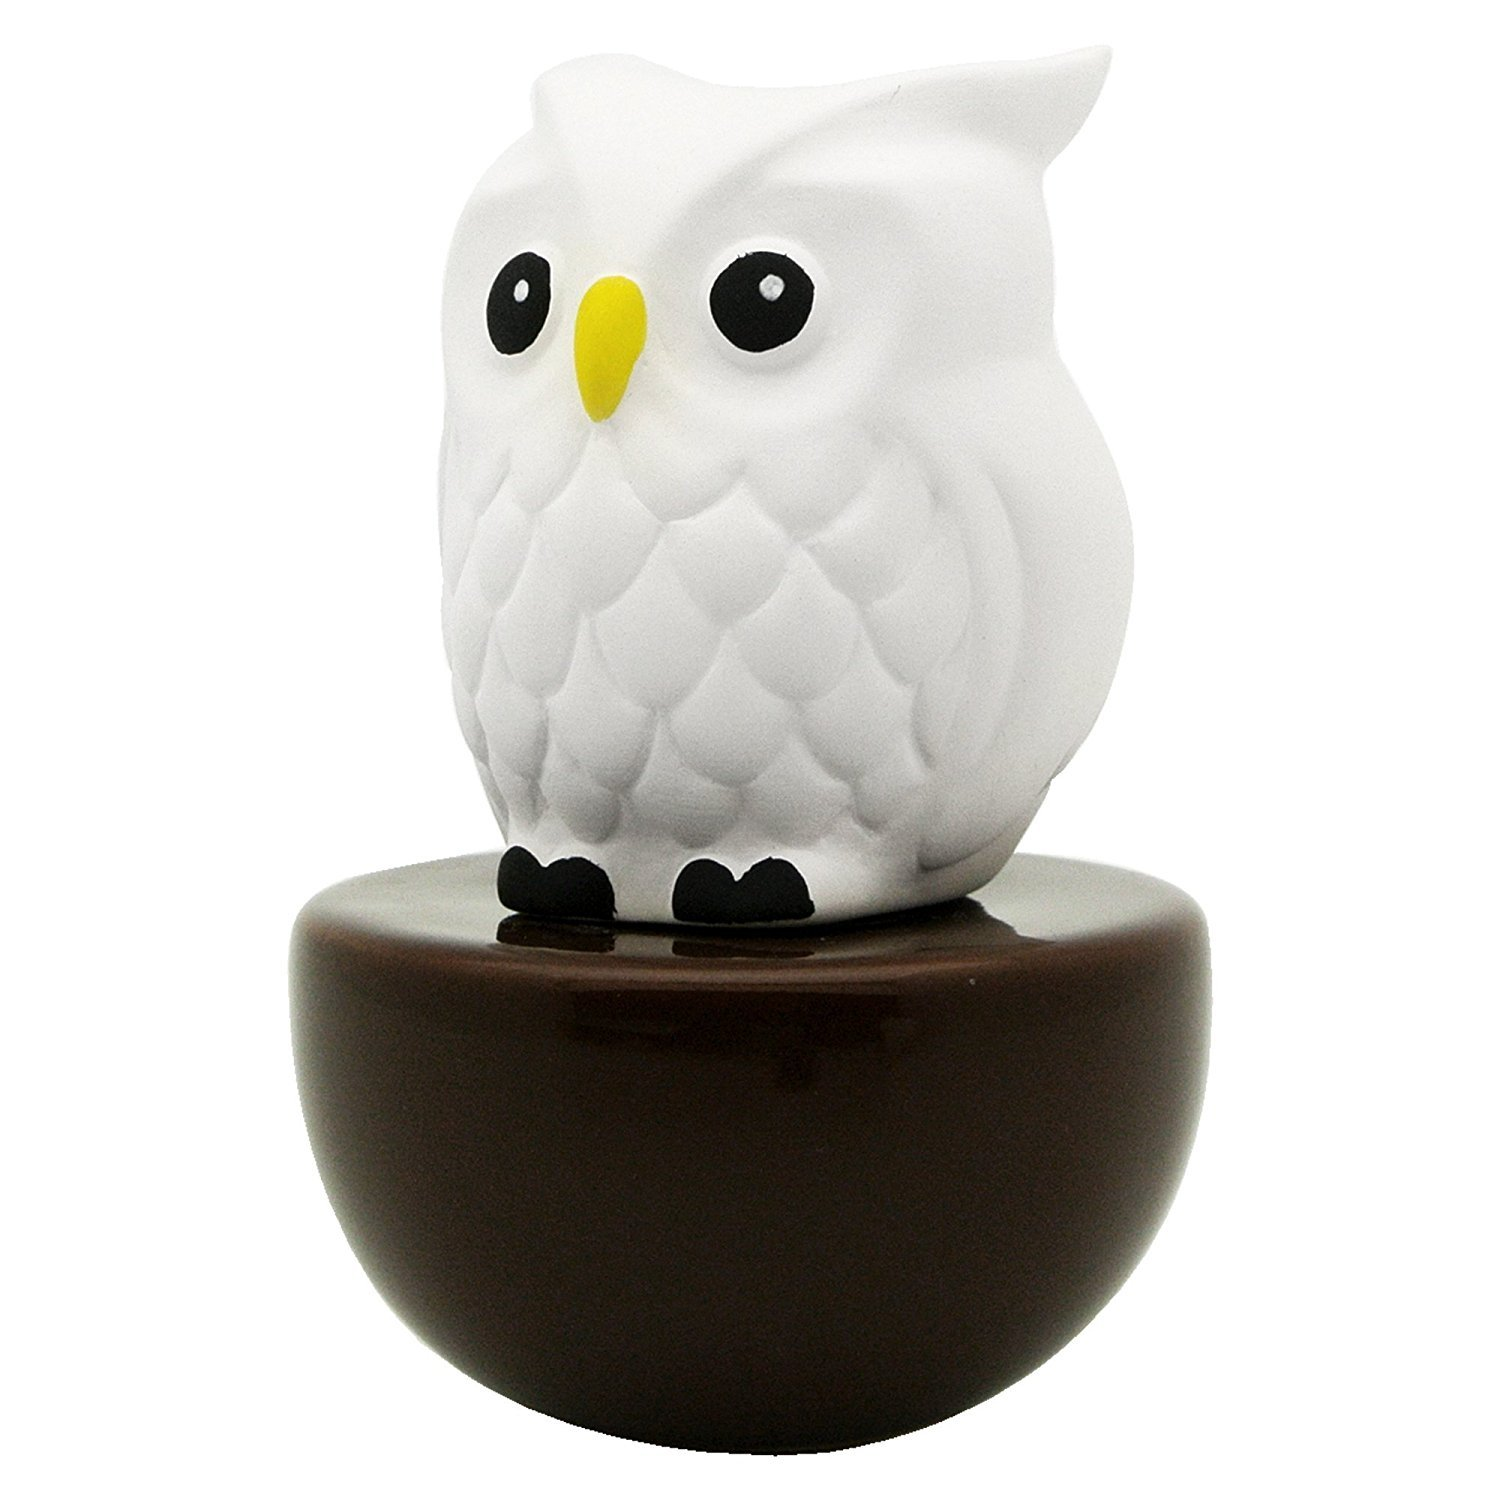 Easy_company Ceramic fragrance diffuser for aromatherapy and decorate your place.Blinky owl(Brown vase)